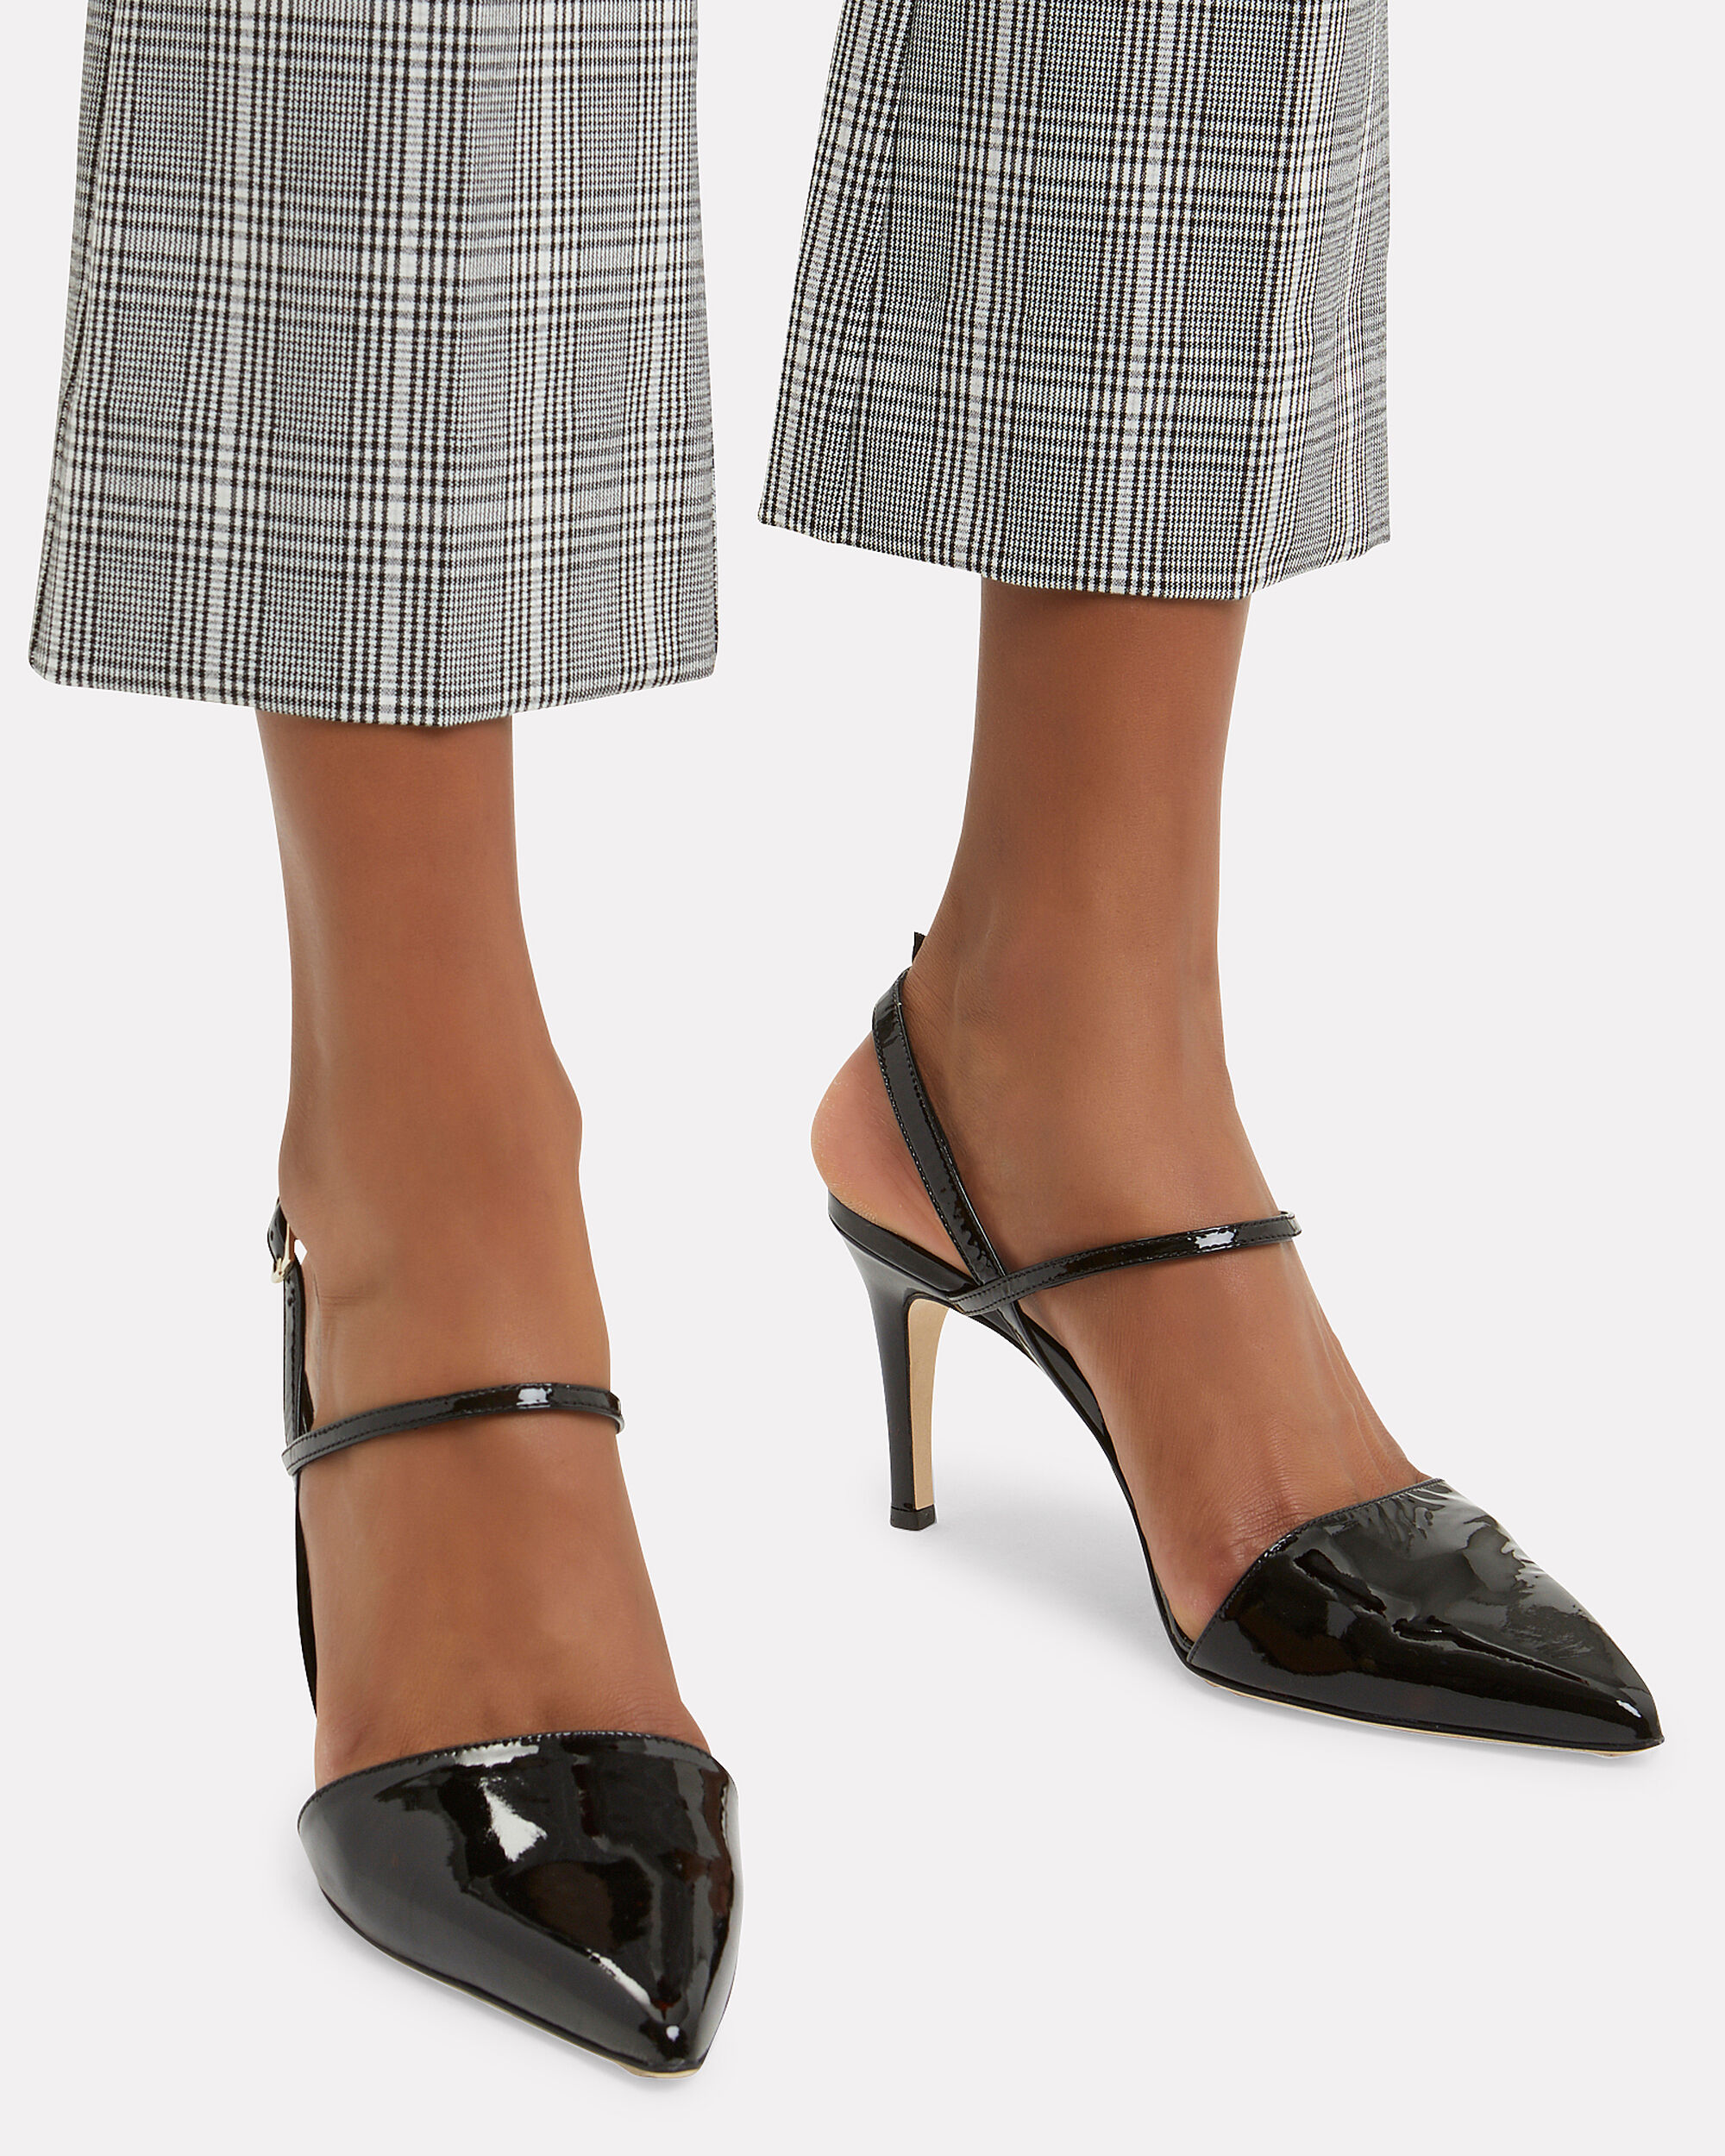 Eli Black Patent Leather Slingback Pumps, BLACK, hi-res